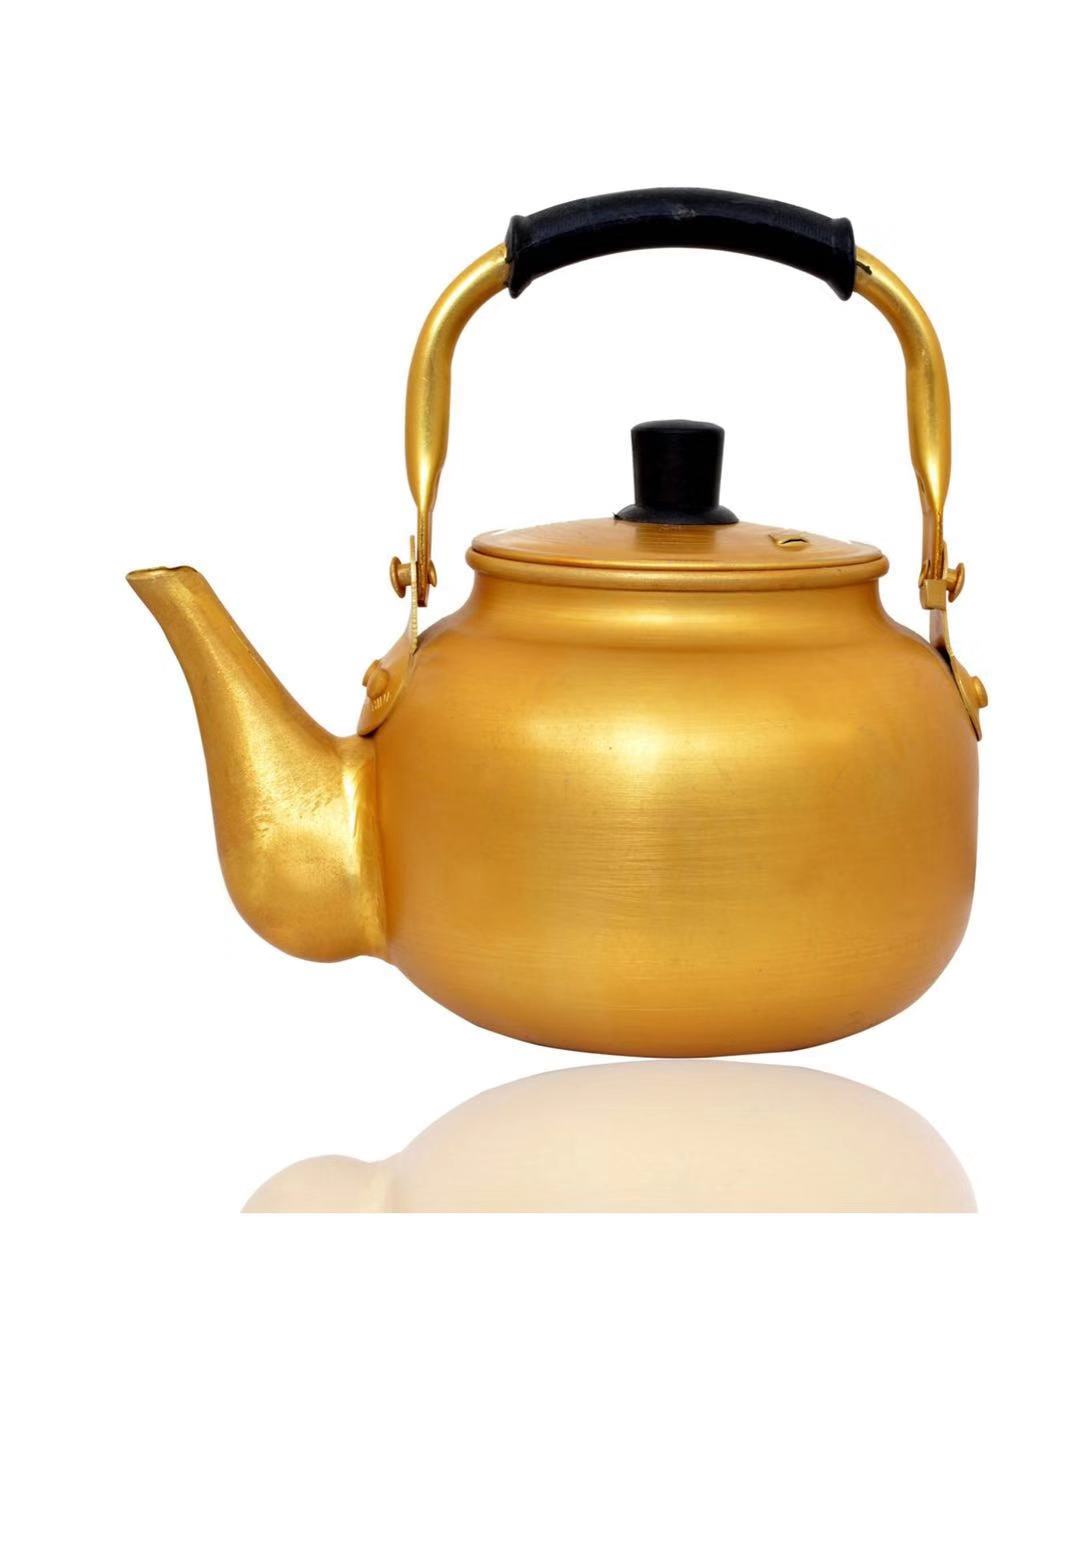 2.0L aluminum yellow kettle weld mouth stove top kettle